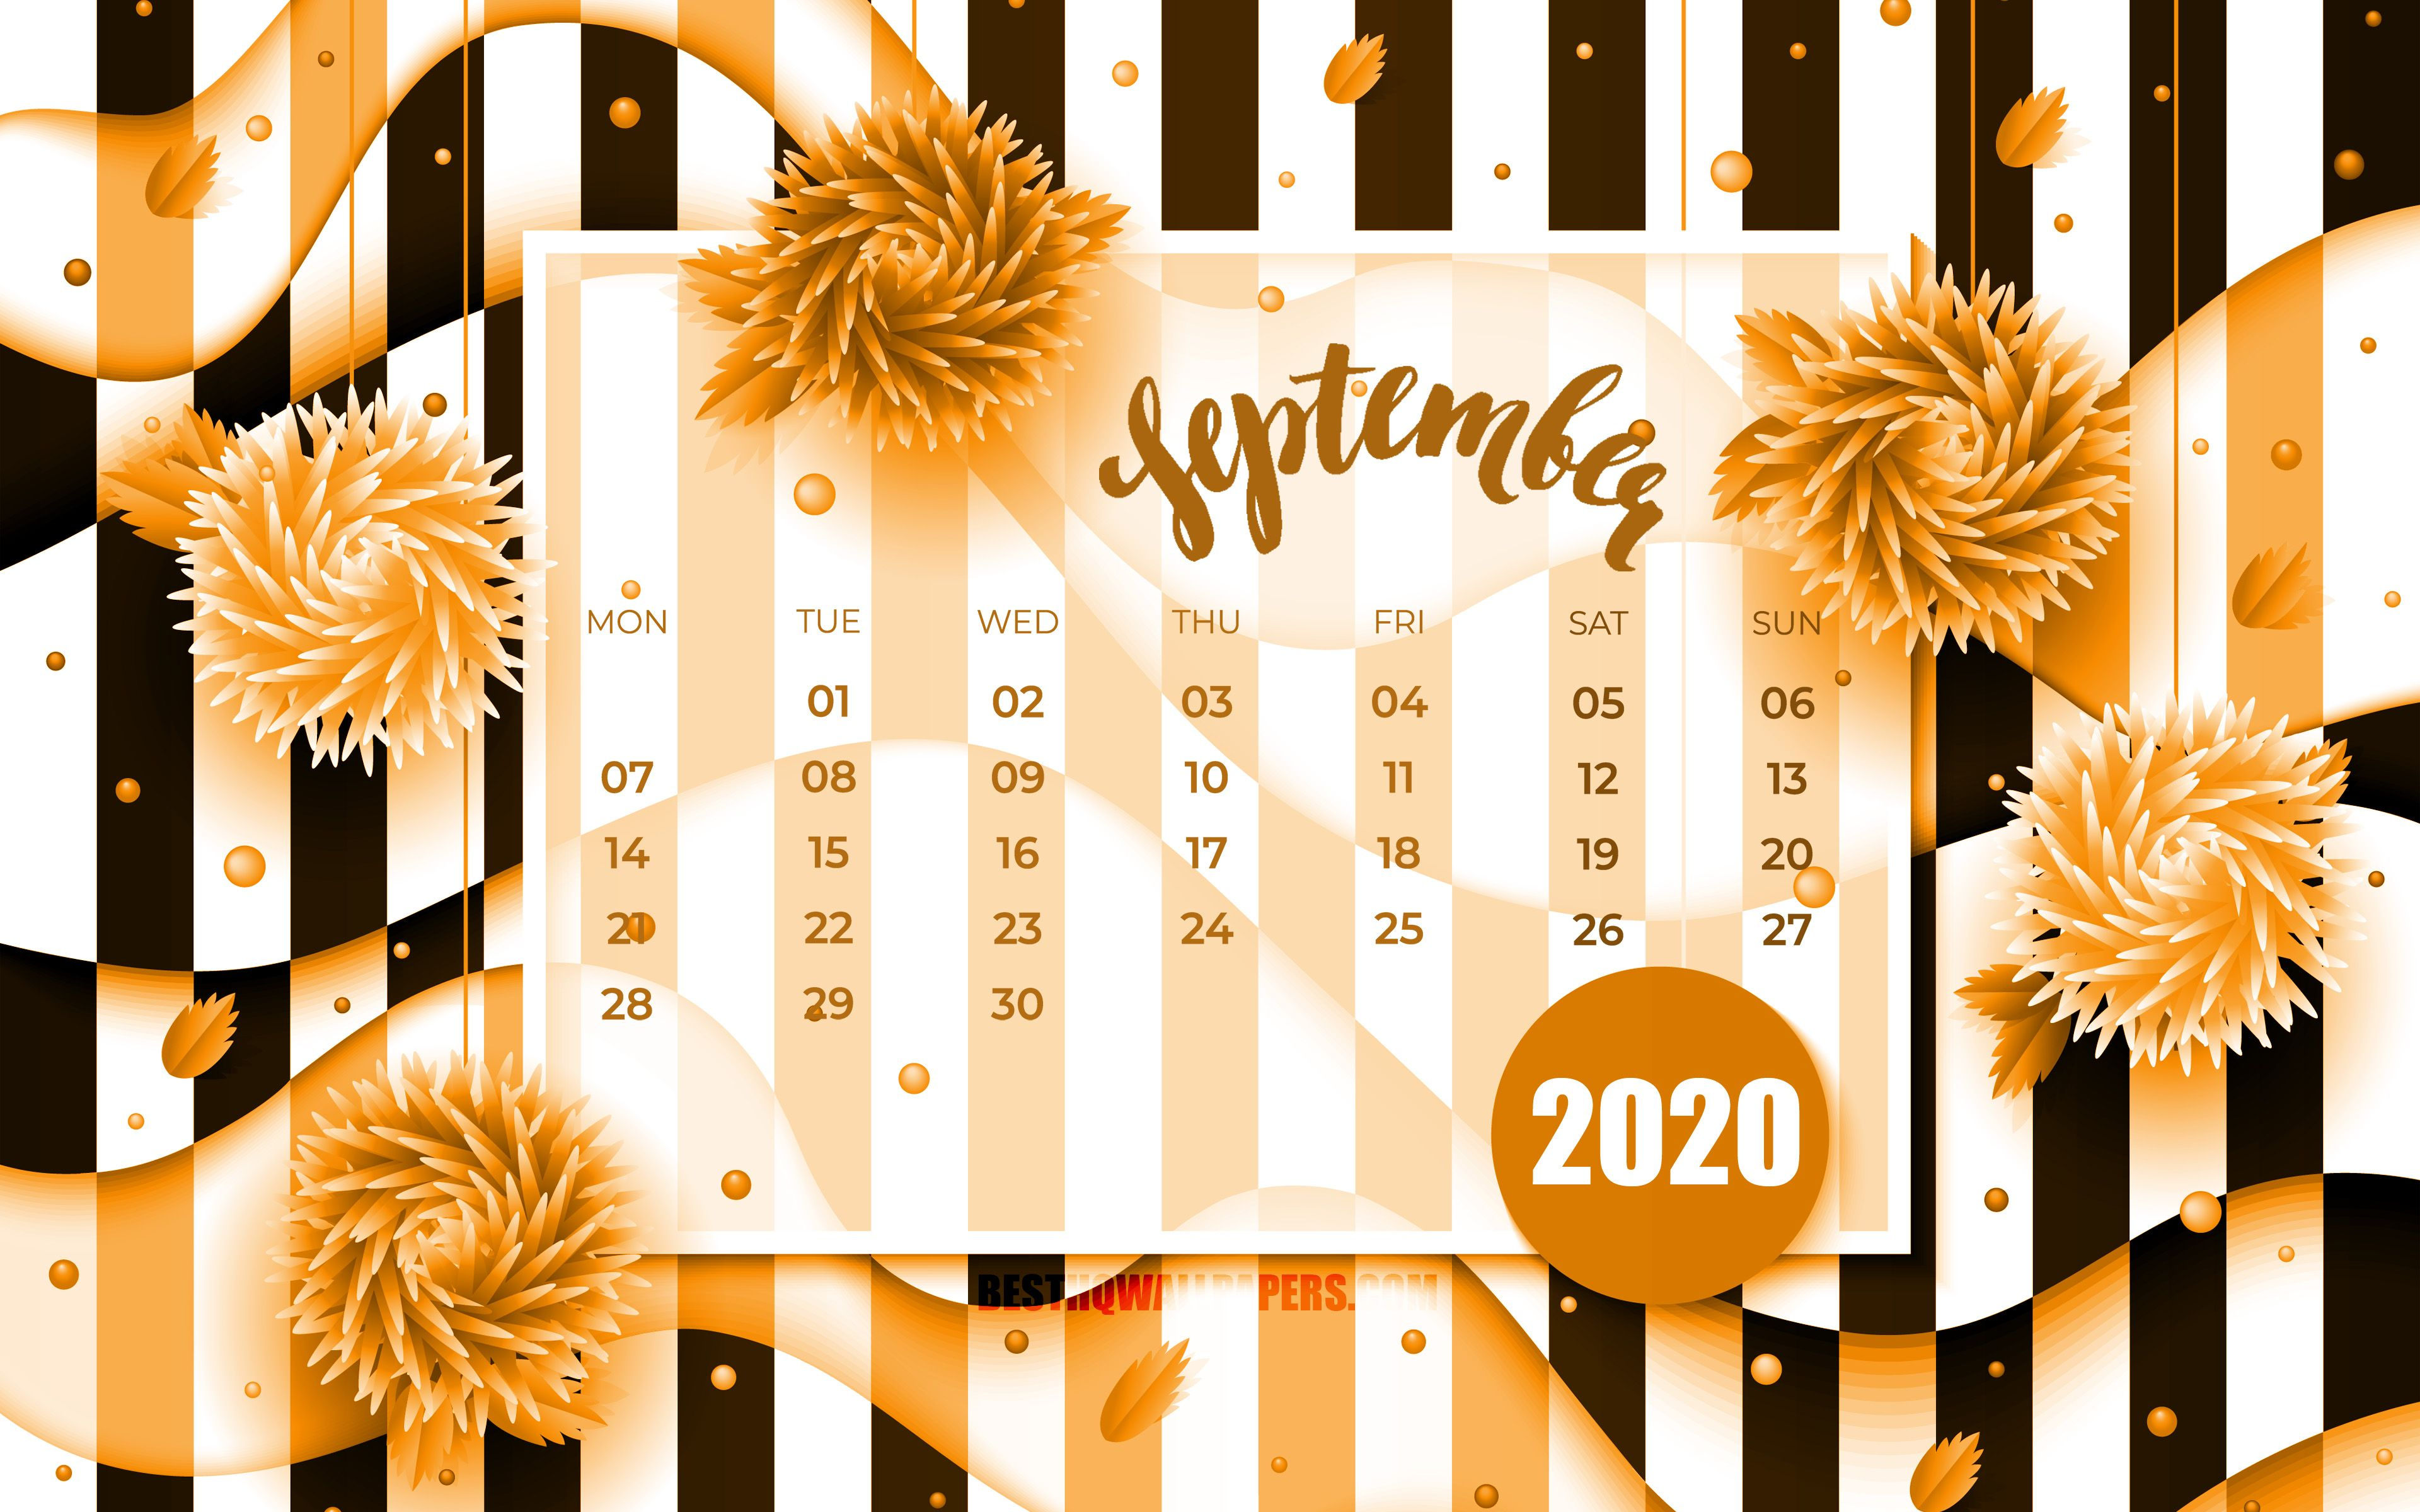 Download wallpapers September 2020 Calendar, 4k, orange 3D flowers, 2020 calendar, autumn calendars, September 2020, creative, September 2020 calendar with flowers, Calendar September 2020, artwork, 2020 calendars, 2020 September Calendar for desktop